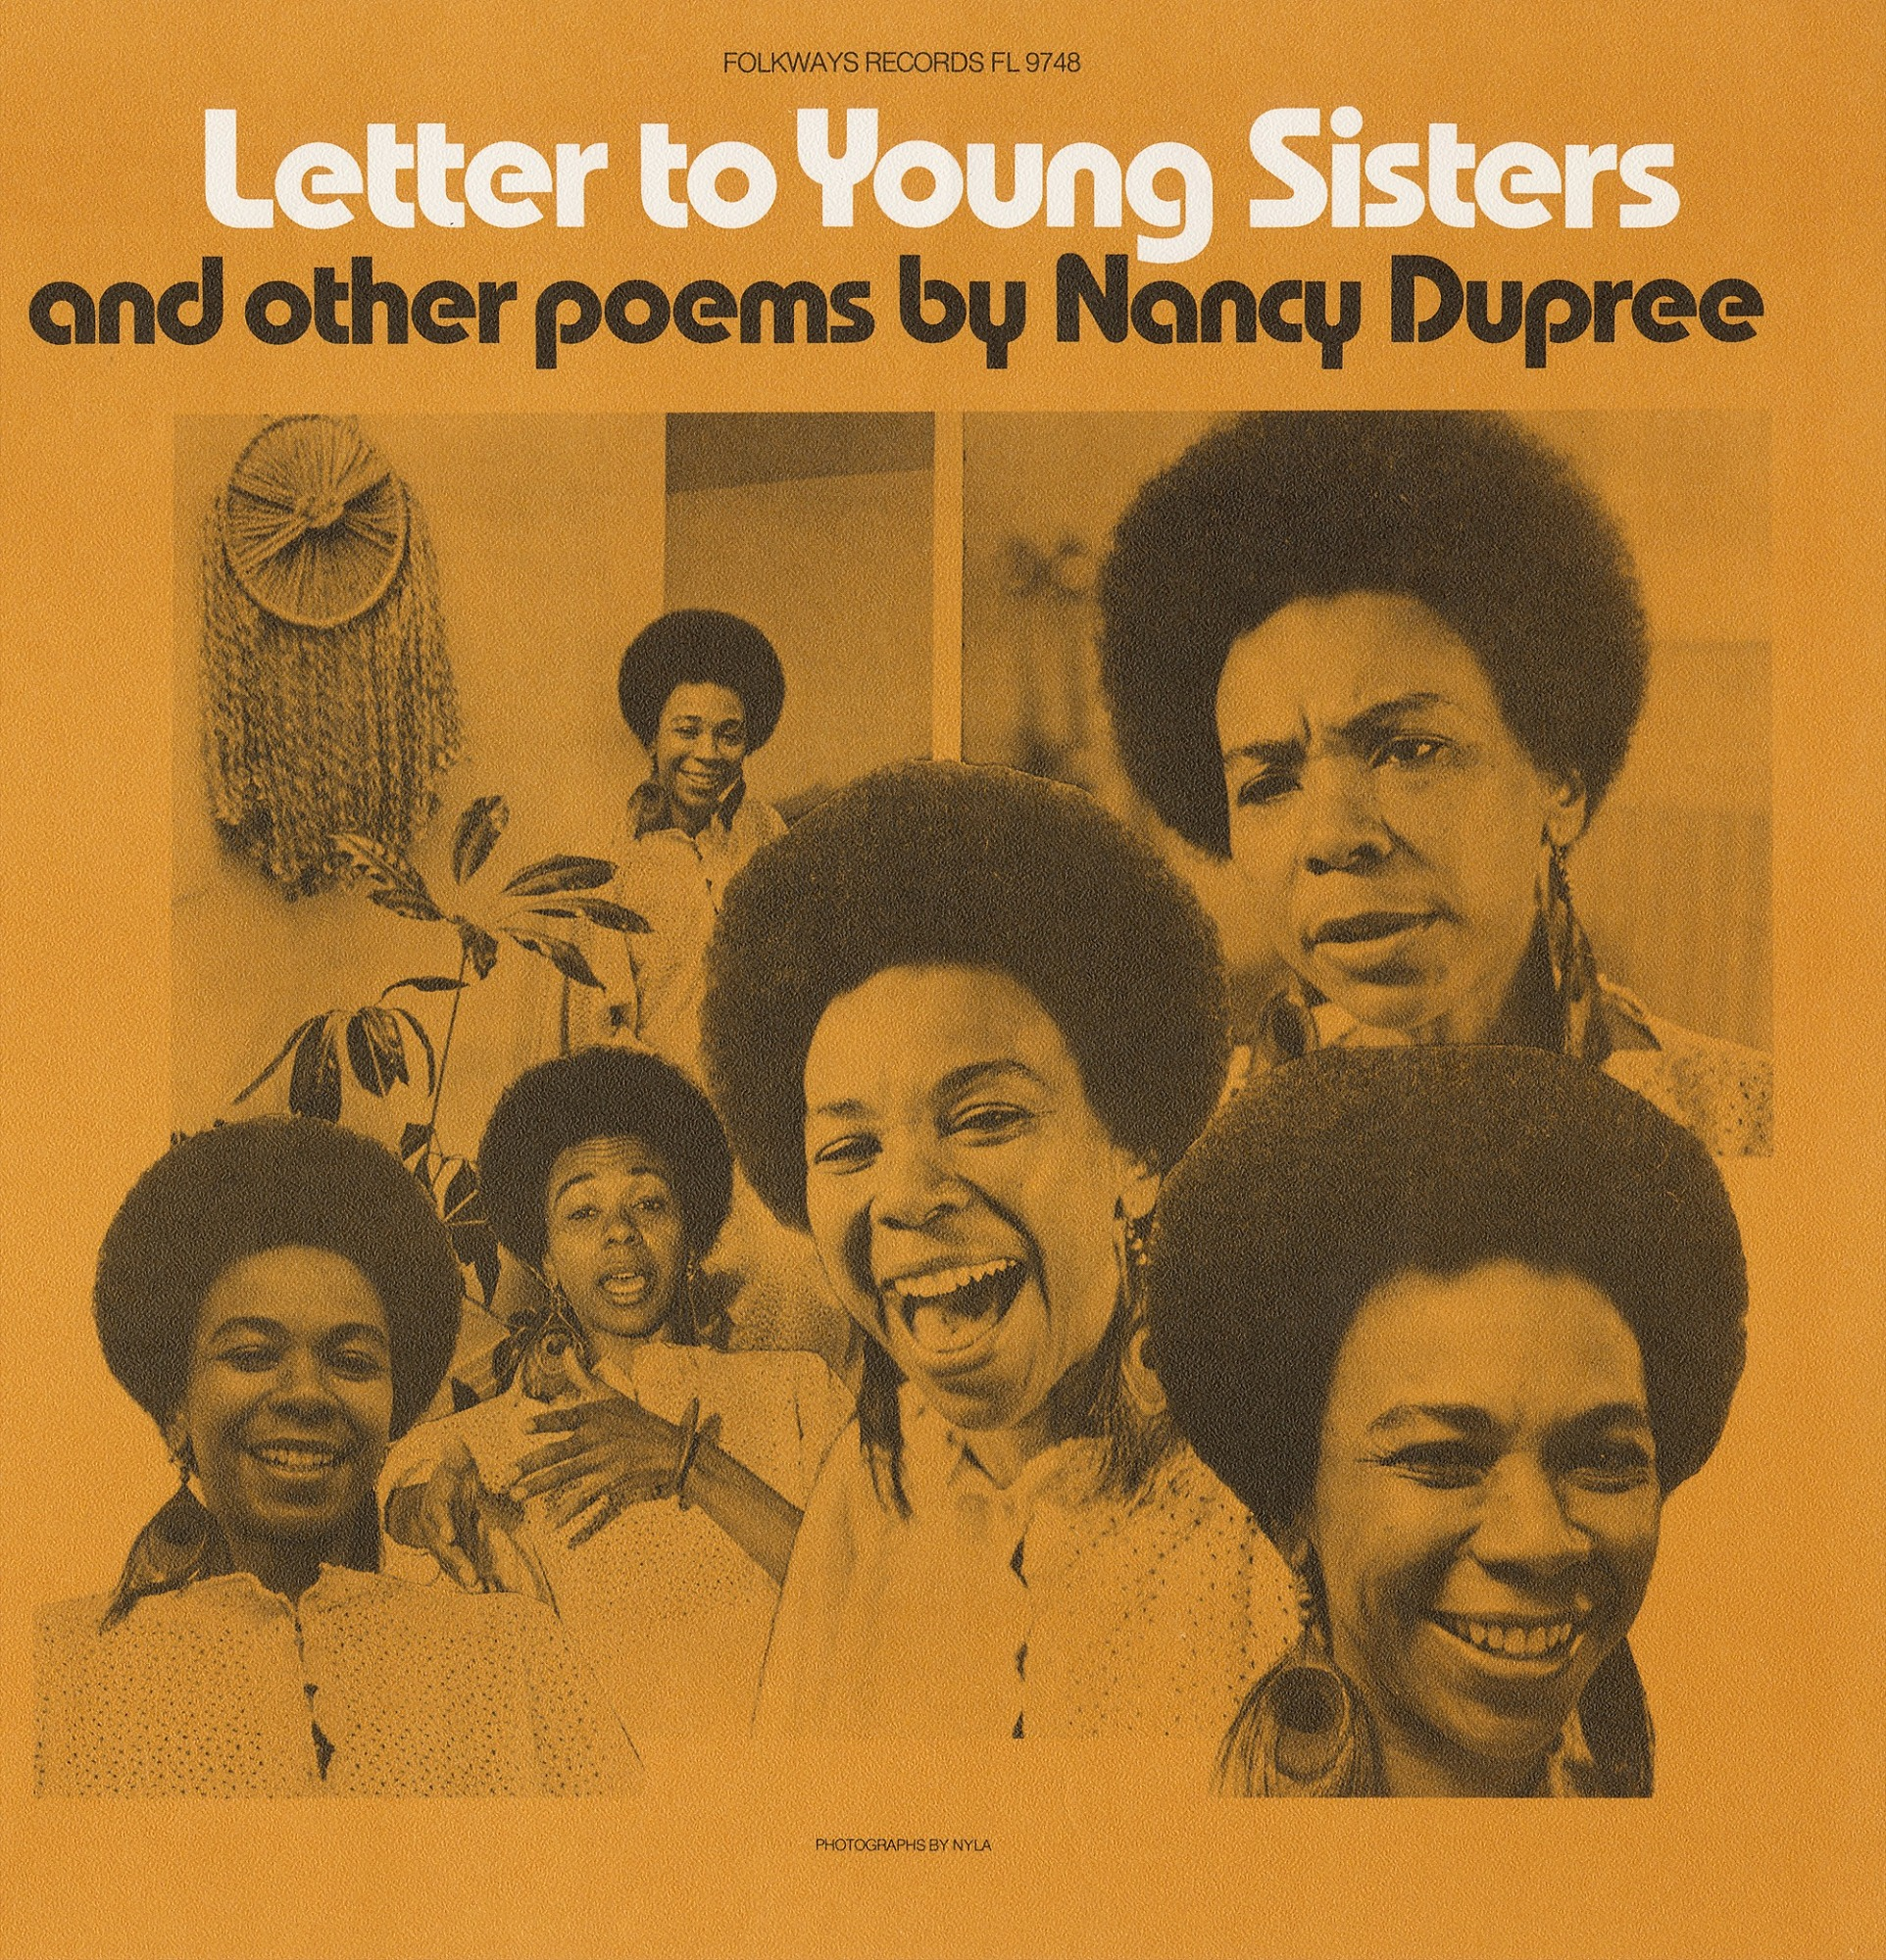 Image 1 for Letter to young sisters and other poems sound recording / by Nancy Dupree